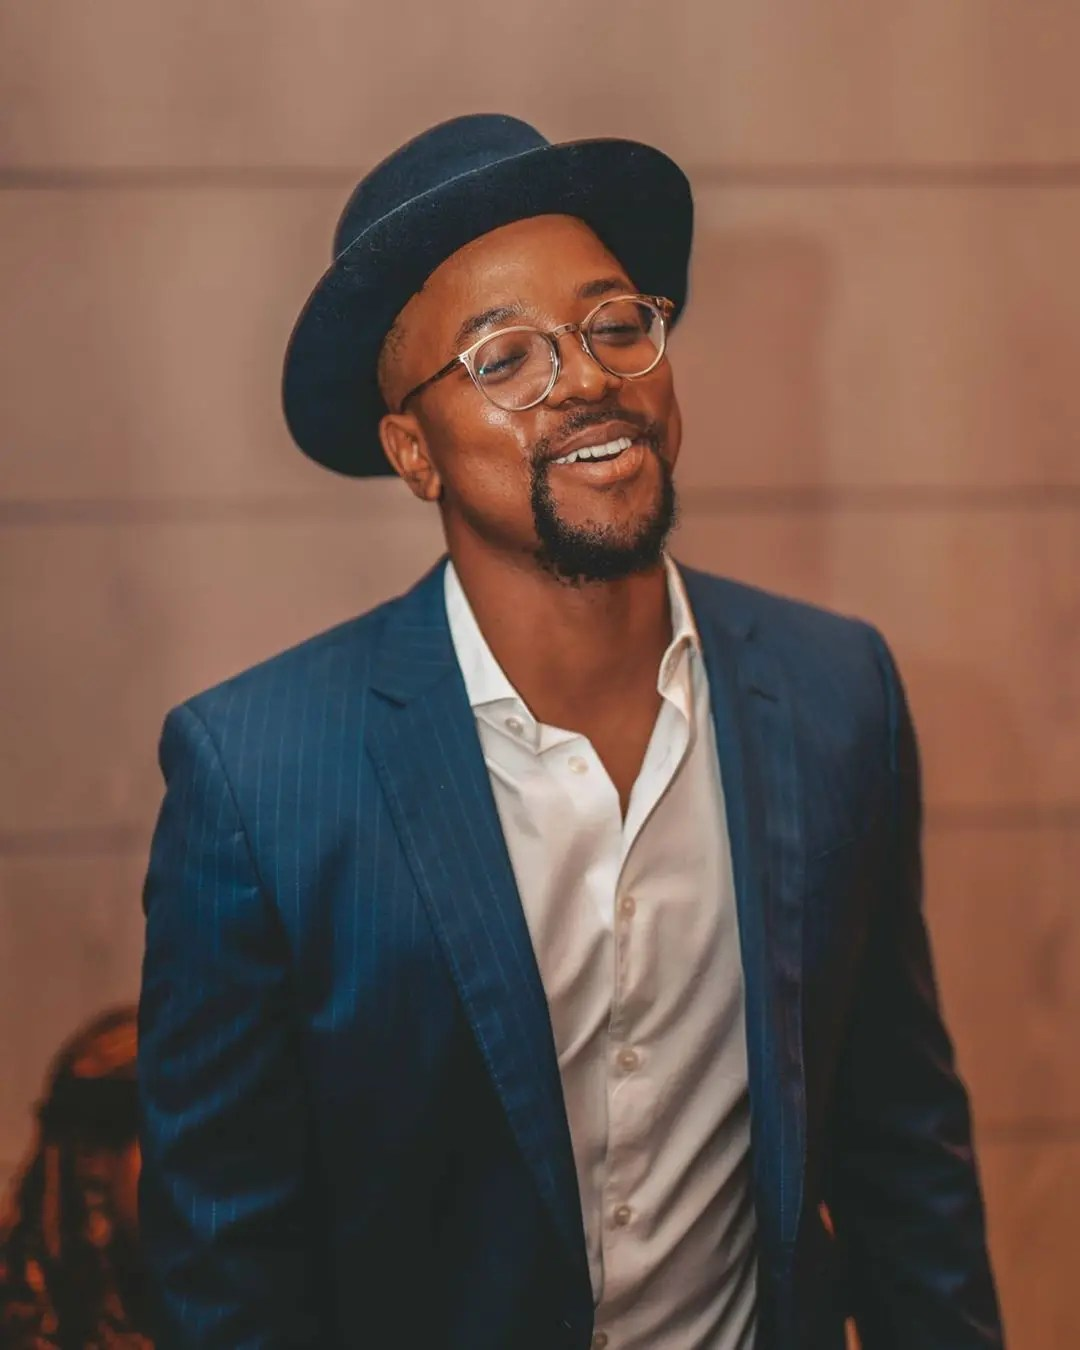 Maps Maponyane chats live on IG with coronavirus infected friend